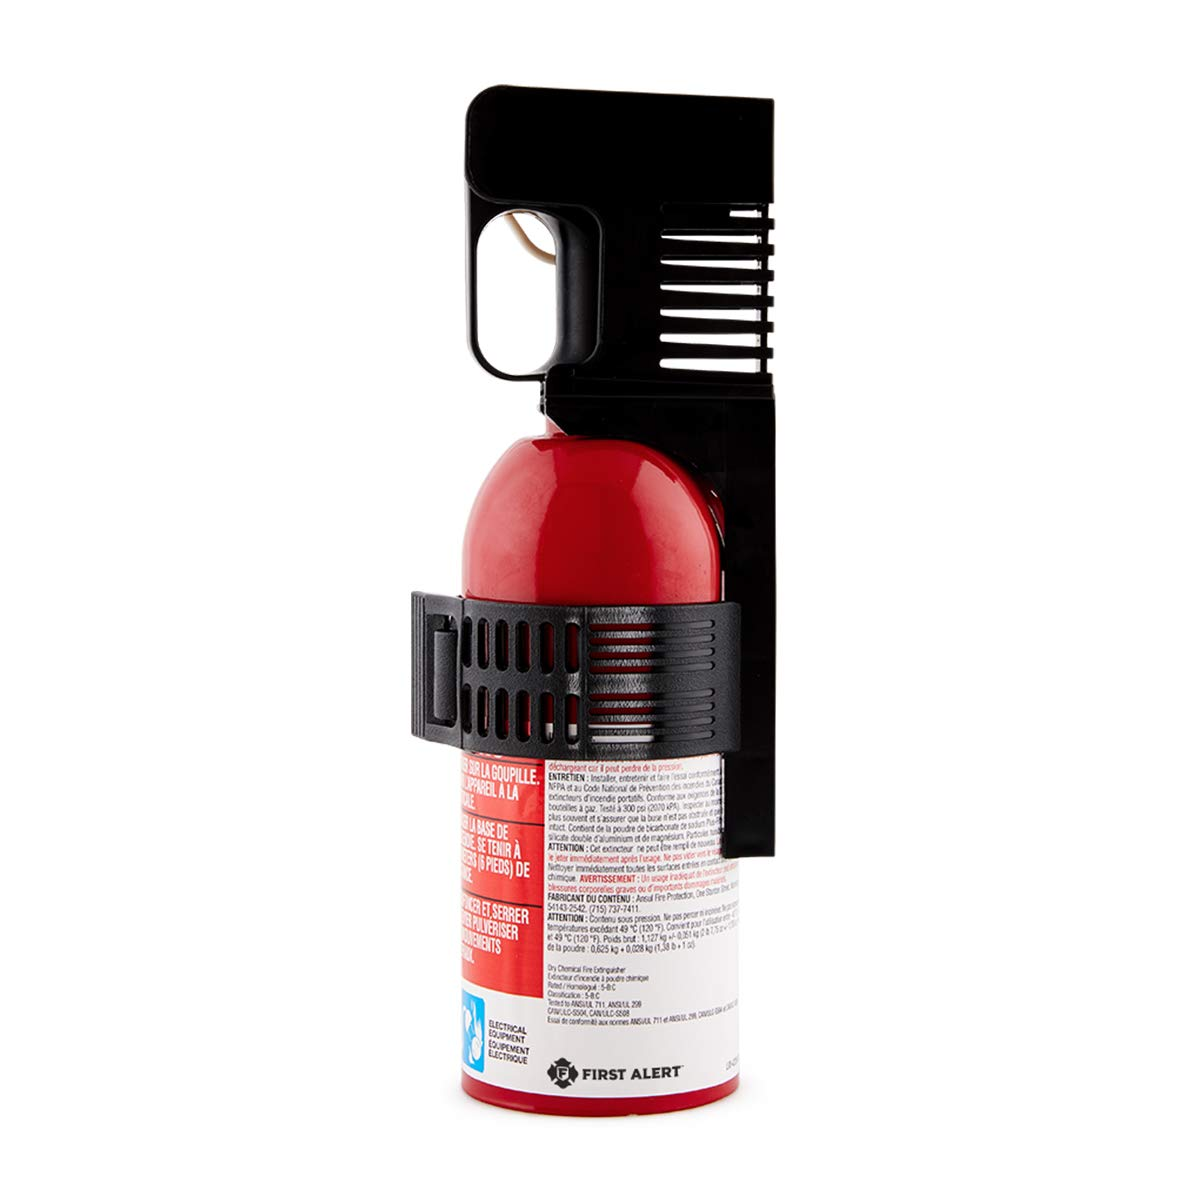 First Alert Fire Extinguisher | Car Fire Extinguisher, Red, AUTO5 by First Alert